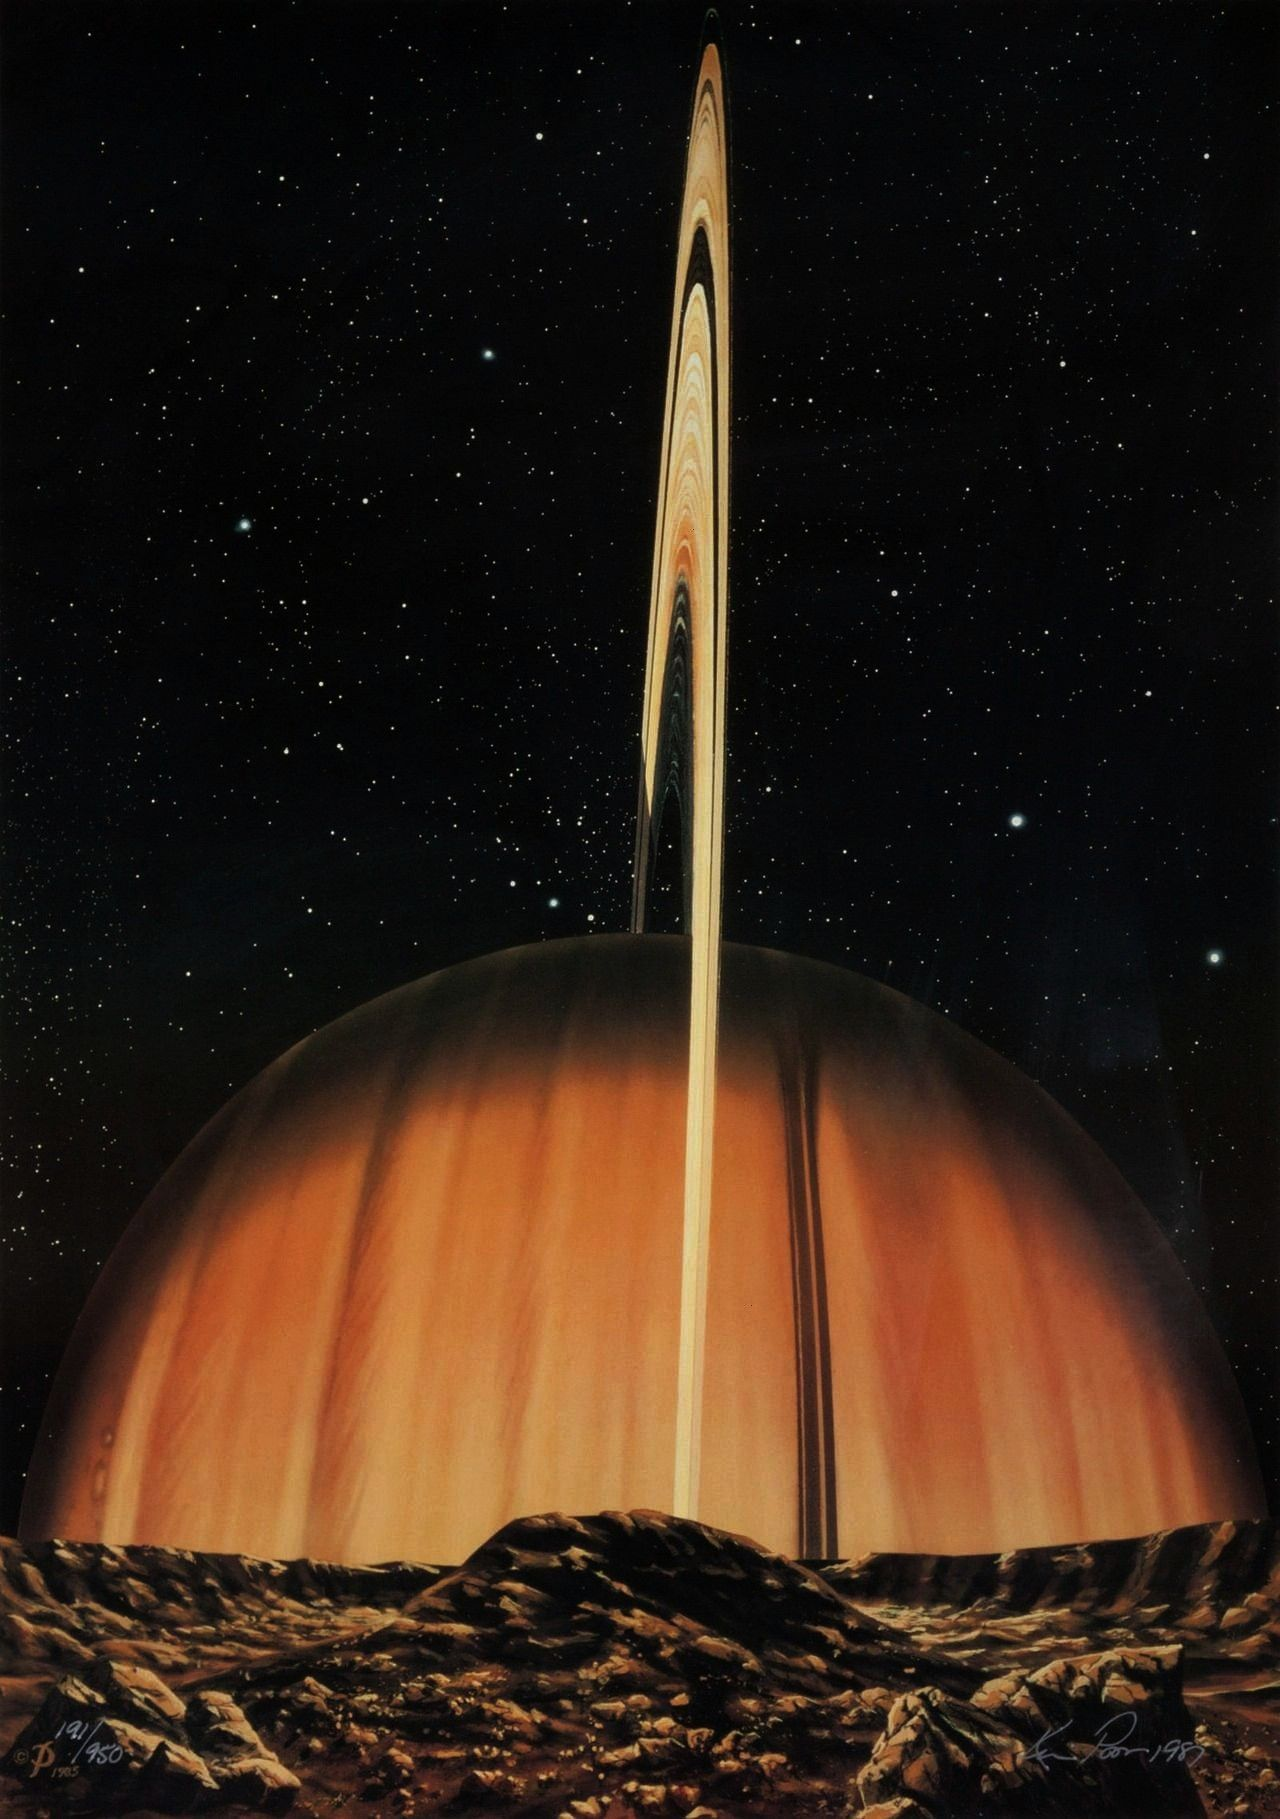 large over Mimas in The Sword of Herschel by Kim Poor 1985 Saturn looms large over Mimas in The Sword of Herschel by Kim Poor 1985  Learn about gravity and laws of motion...